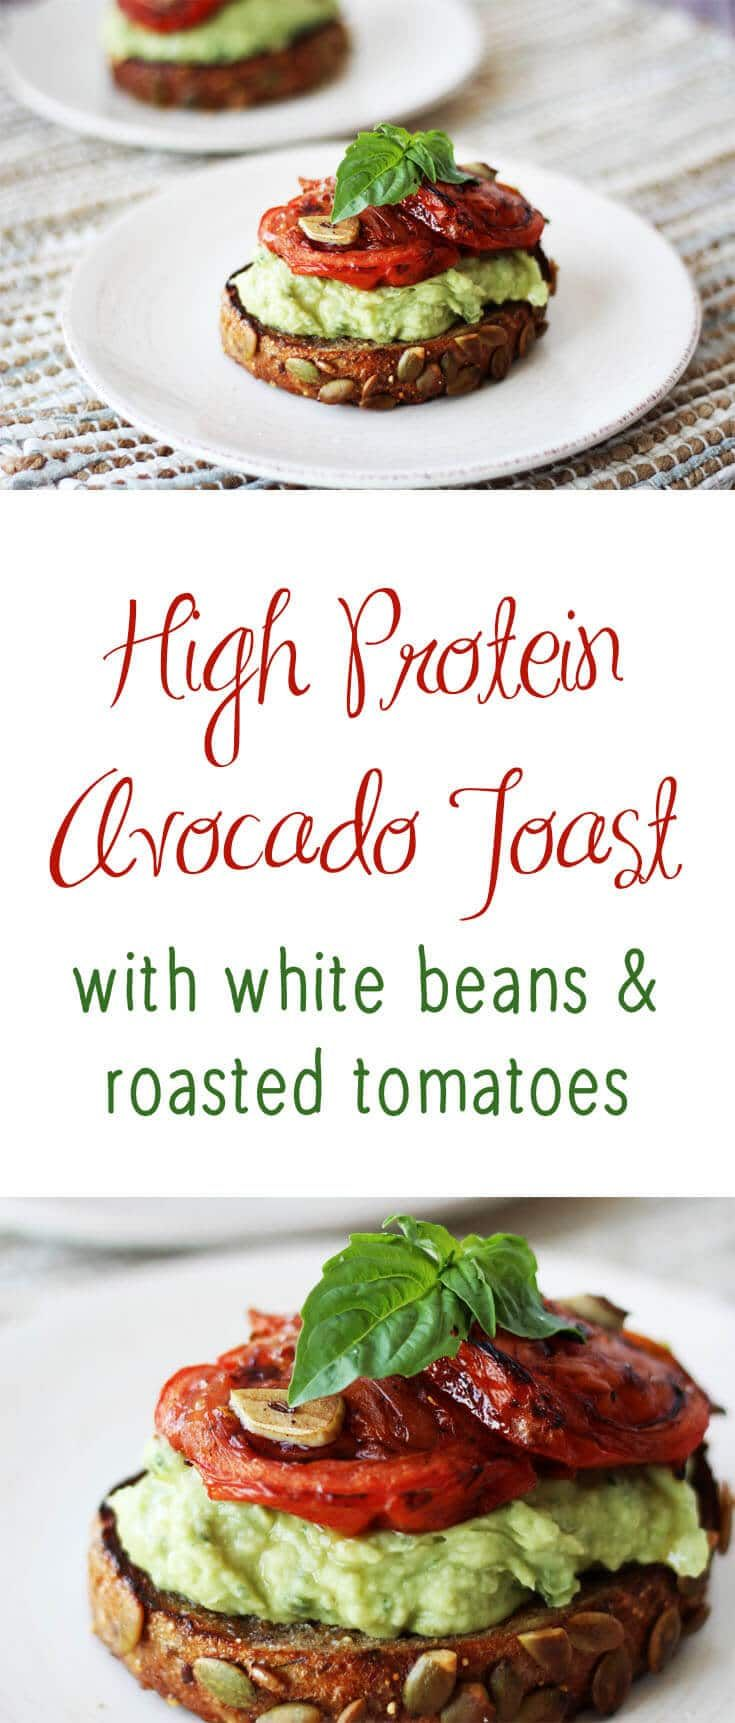 High Protein Avocado Toast with White Beans & Roasted Tomatoes - a healthy, gluten free, vegan, dairy free low carb, high protein snack or breakfast.